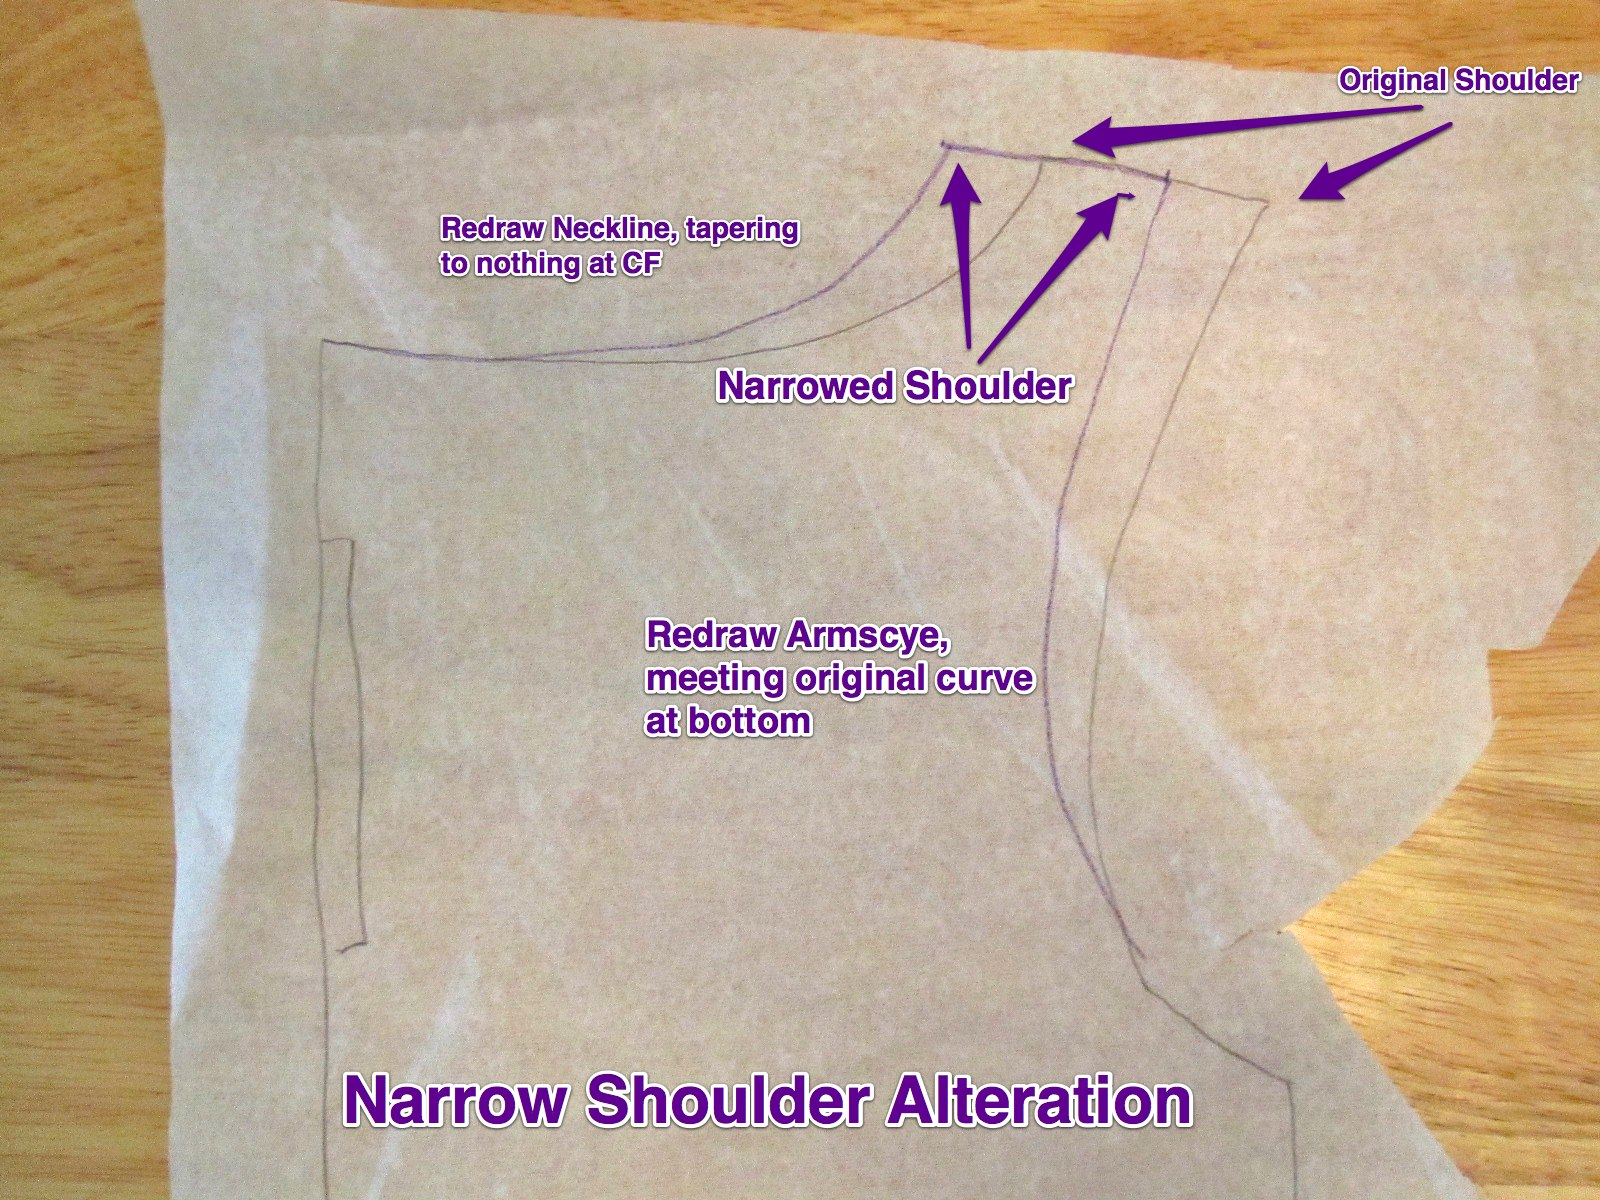 Narrow Shoulder Alteration